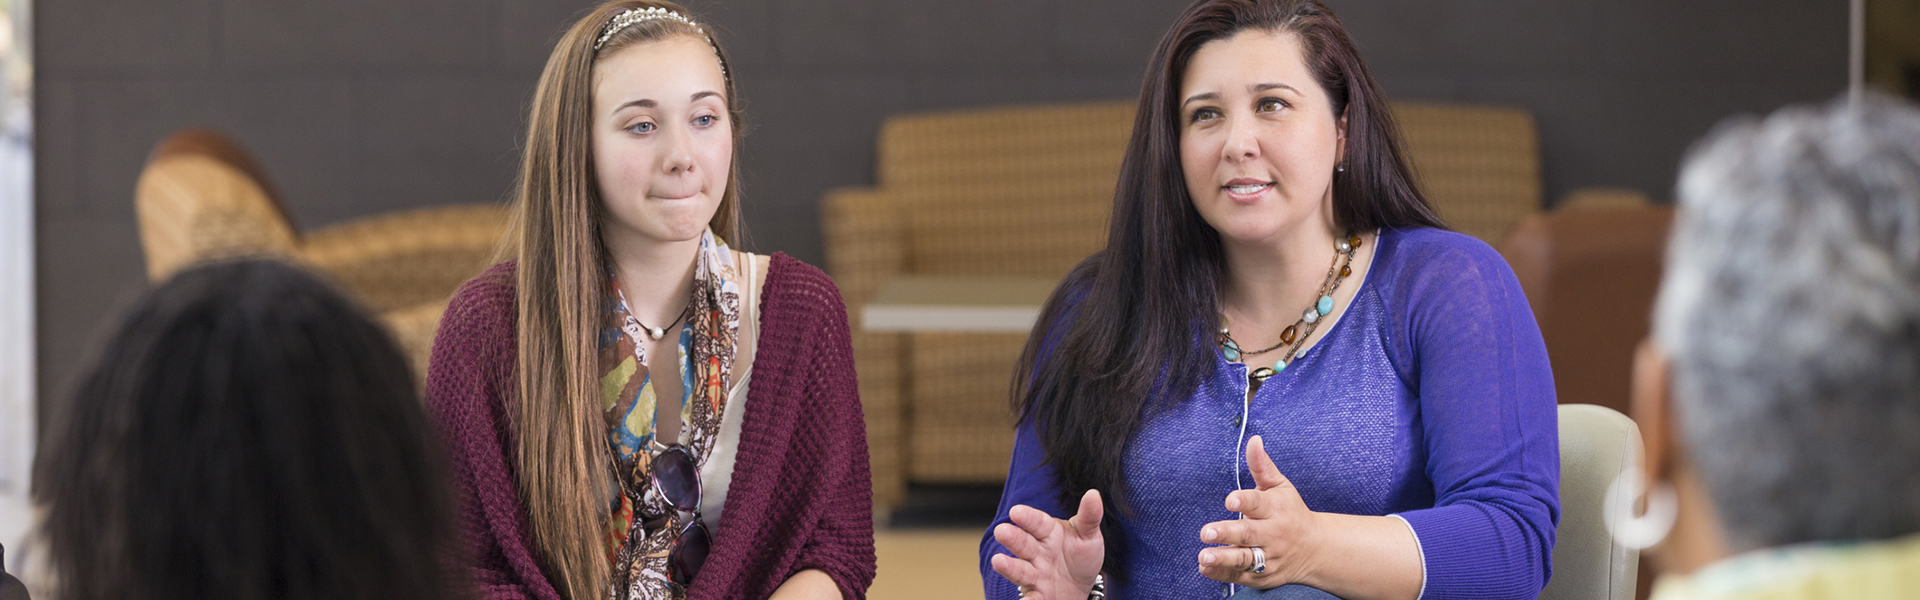 Concussion support group provides answers, options for parents and adolescents